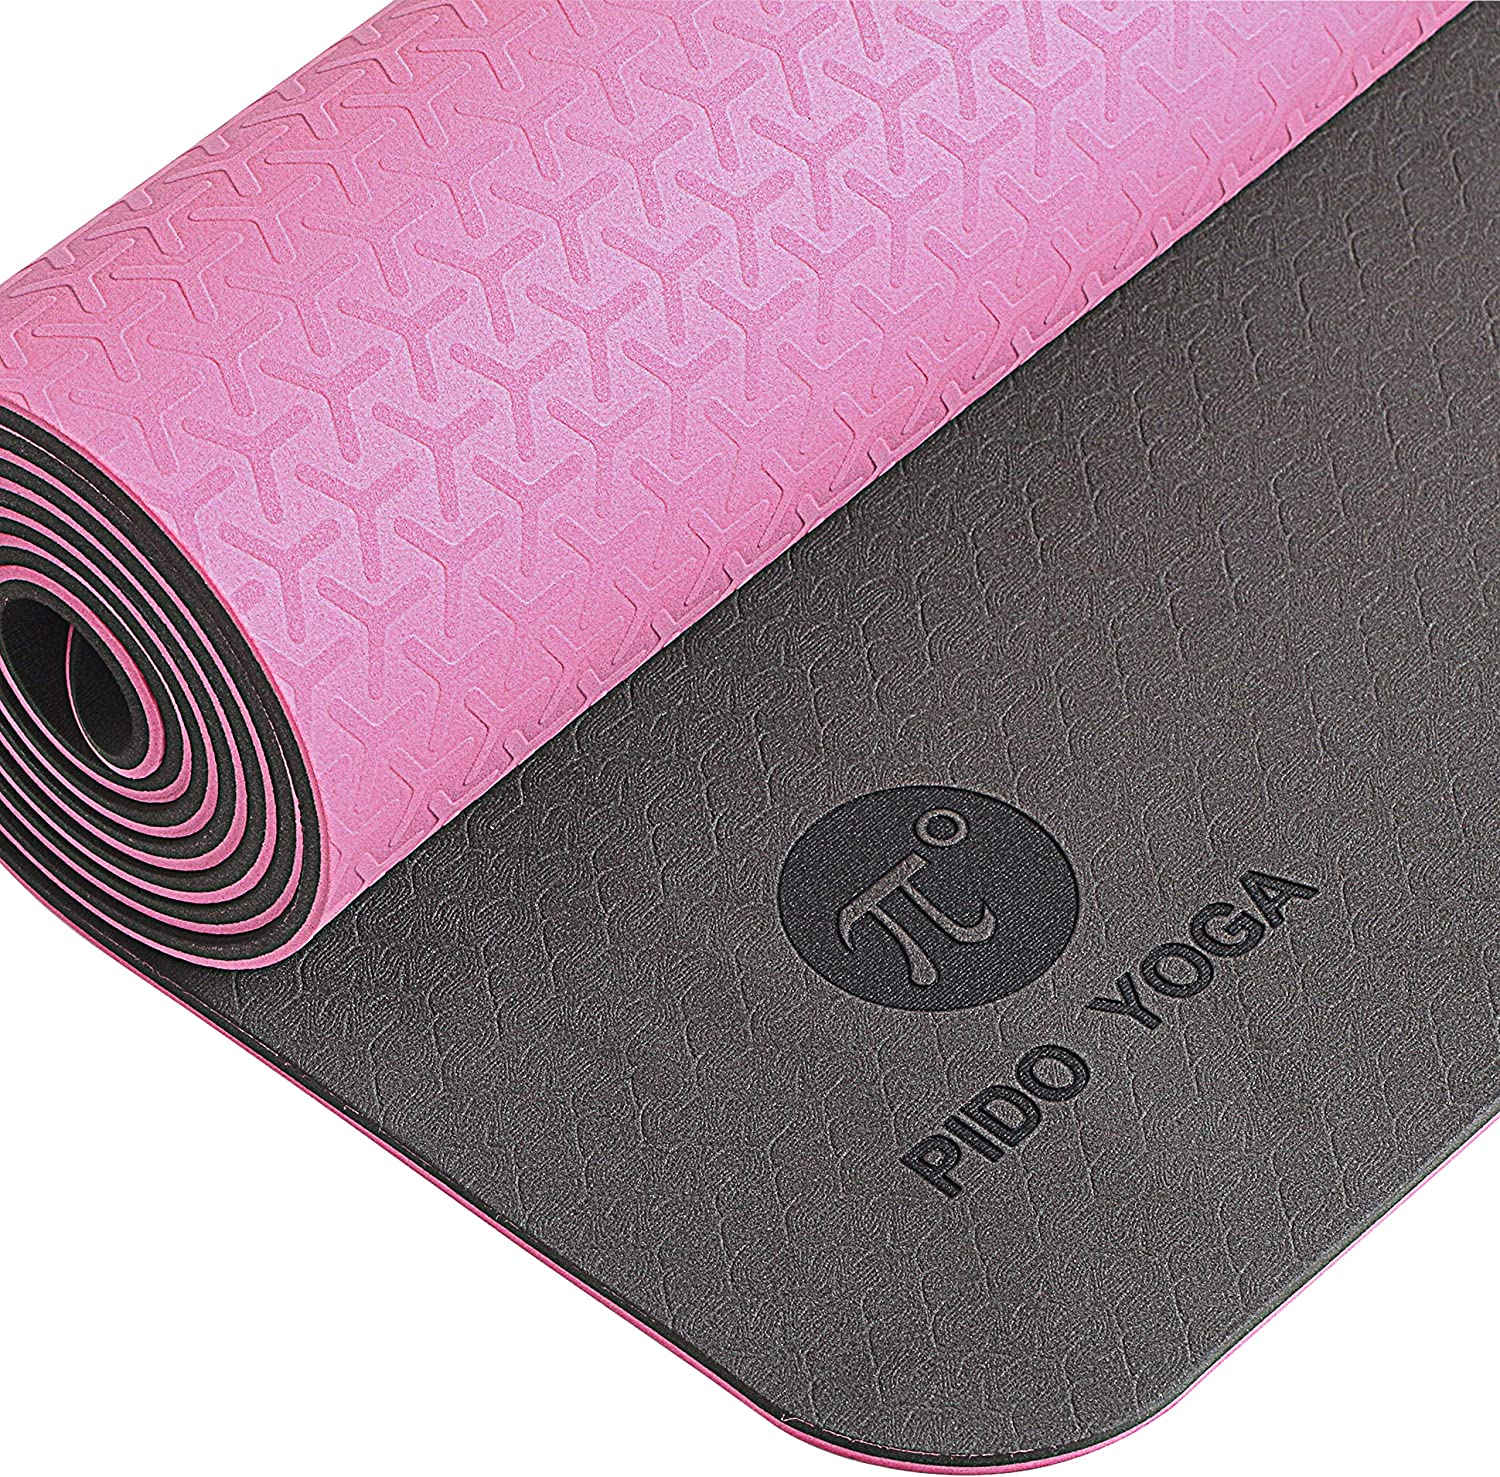 Pido Yoga Mat - 1/4 & 1/3 Inch Extra Thick Non Slip Yoga Mat for Women & Men Eco Friendly TPE Fitness Exercise Mat with Carrying Strap for Yoga, Pilates